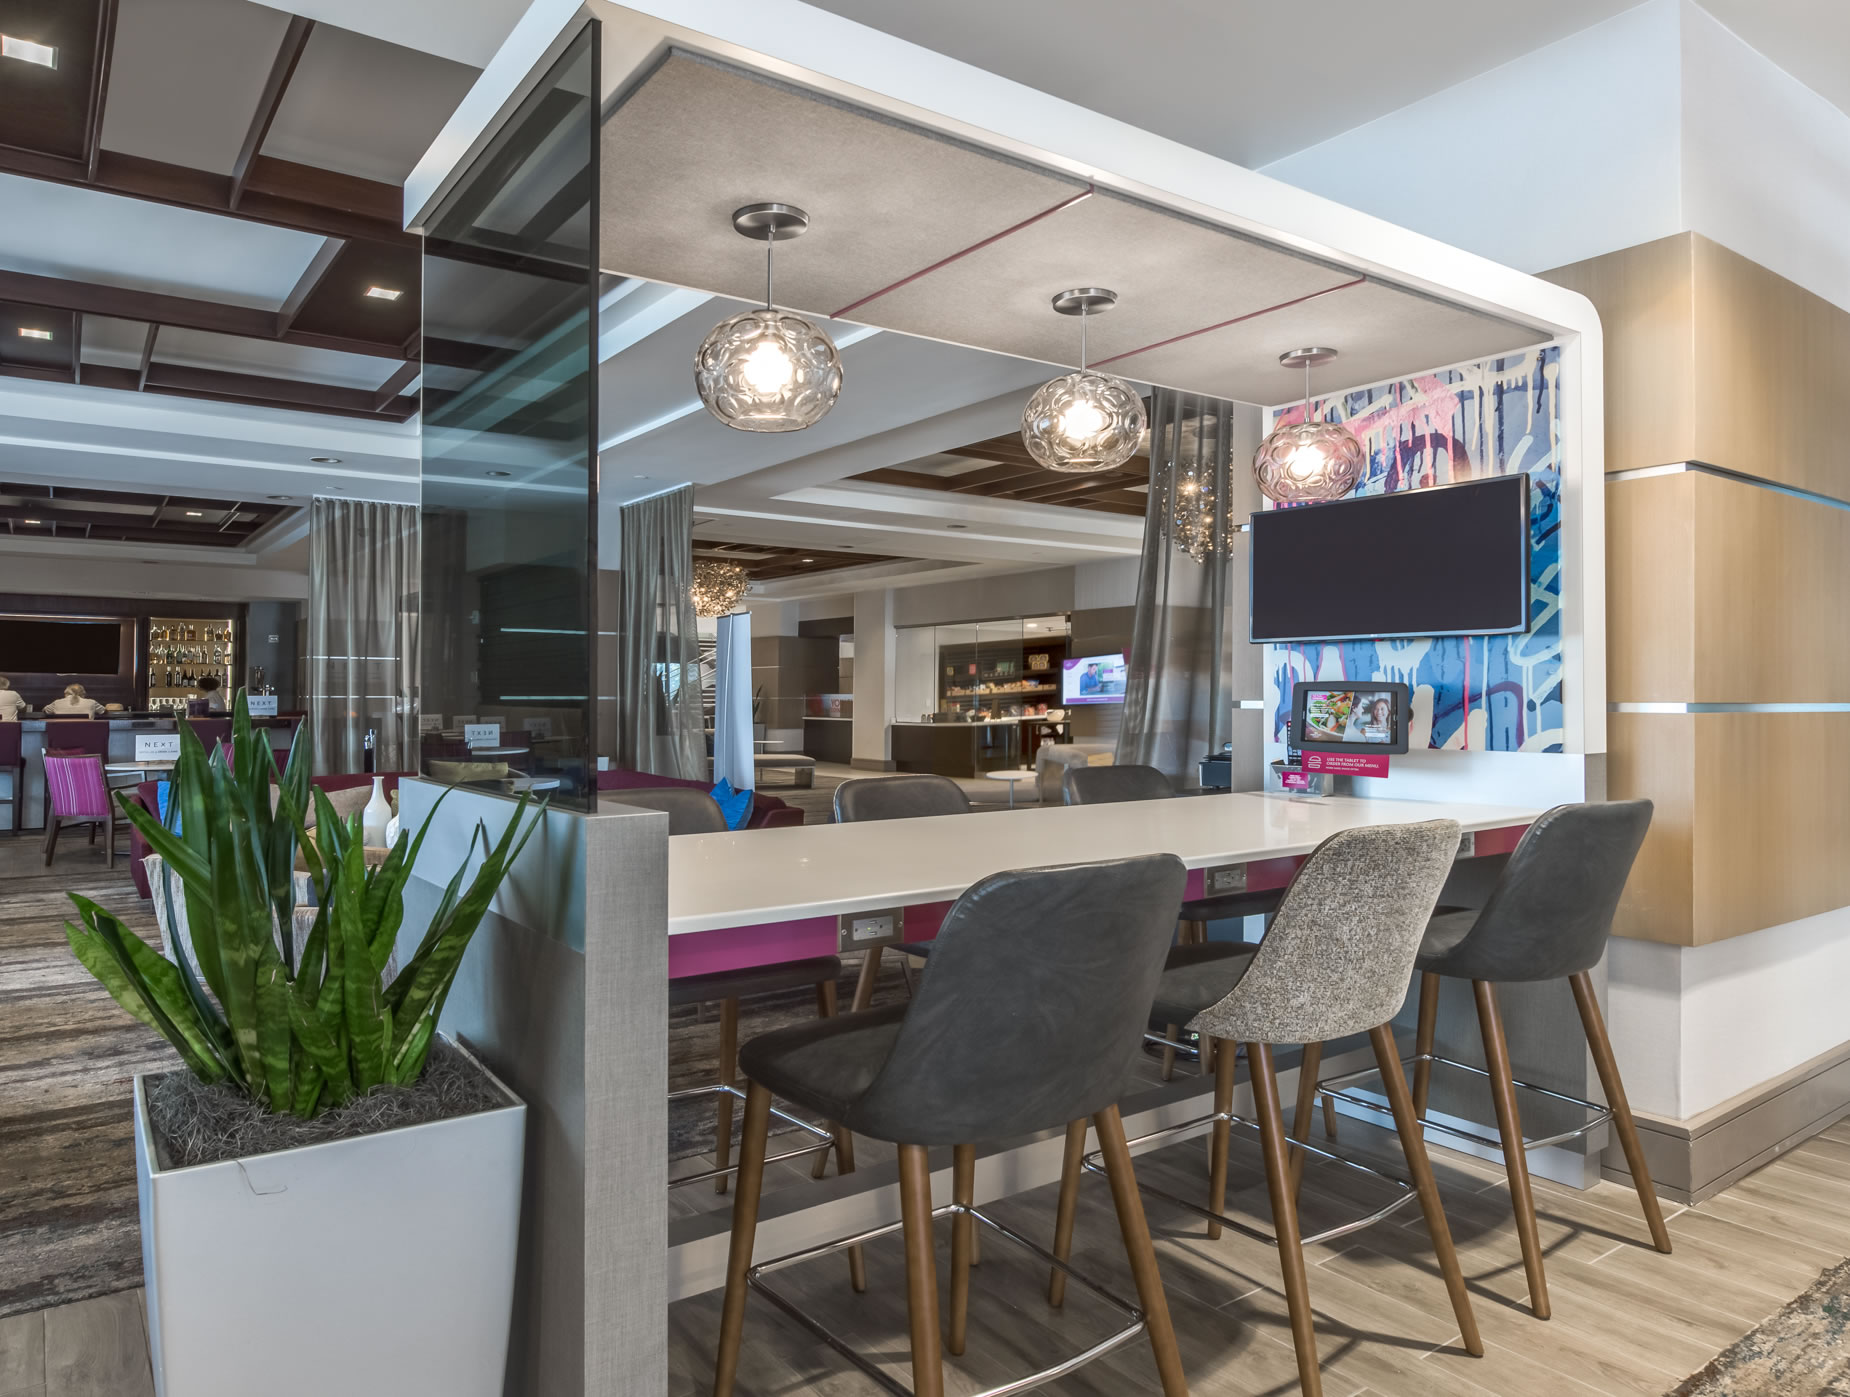 Hotel lobby and lounge area featuring bar chairs and flat screen TVs.